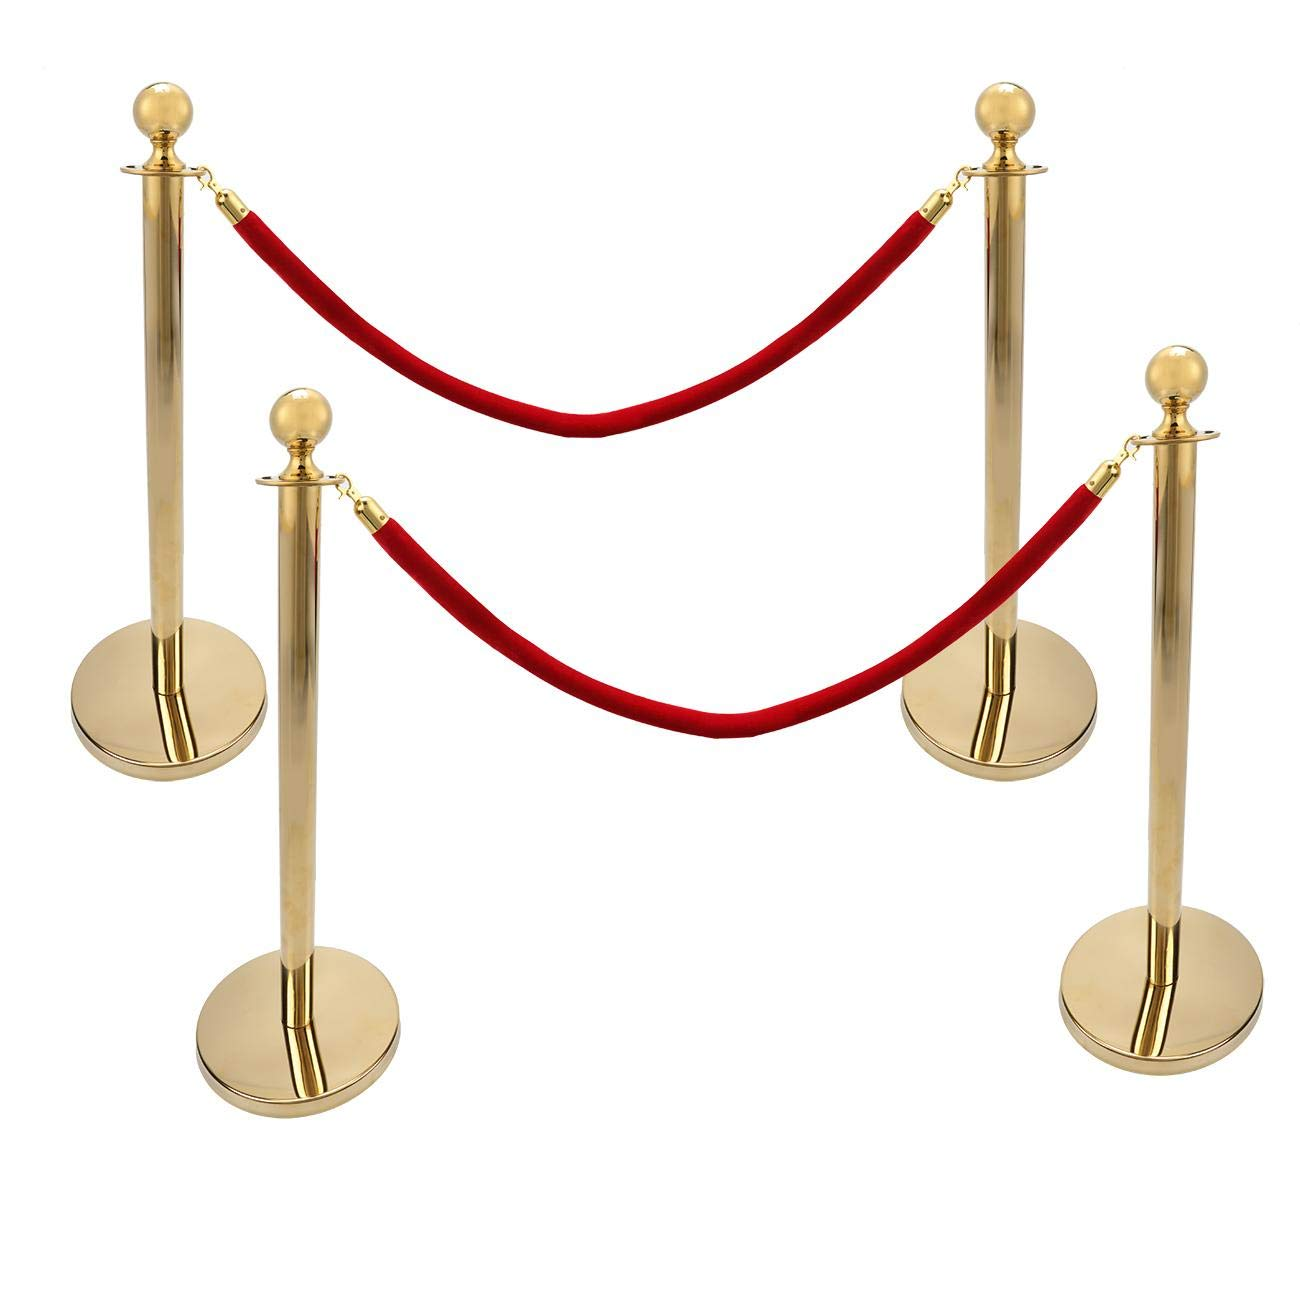 Dyna-Living 4PCS Gold Stainless Steel Stanchion Post Queue Round Top Plished Stanchion Post Set with Velvet Rope Stanchion 38In Crowd Control Barrier Queue Line by Dyna-Living